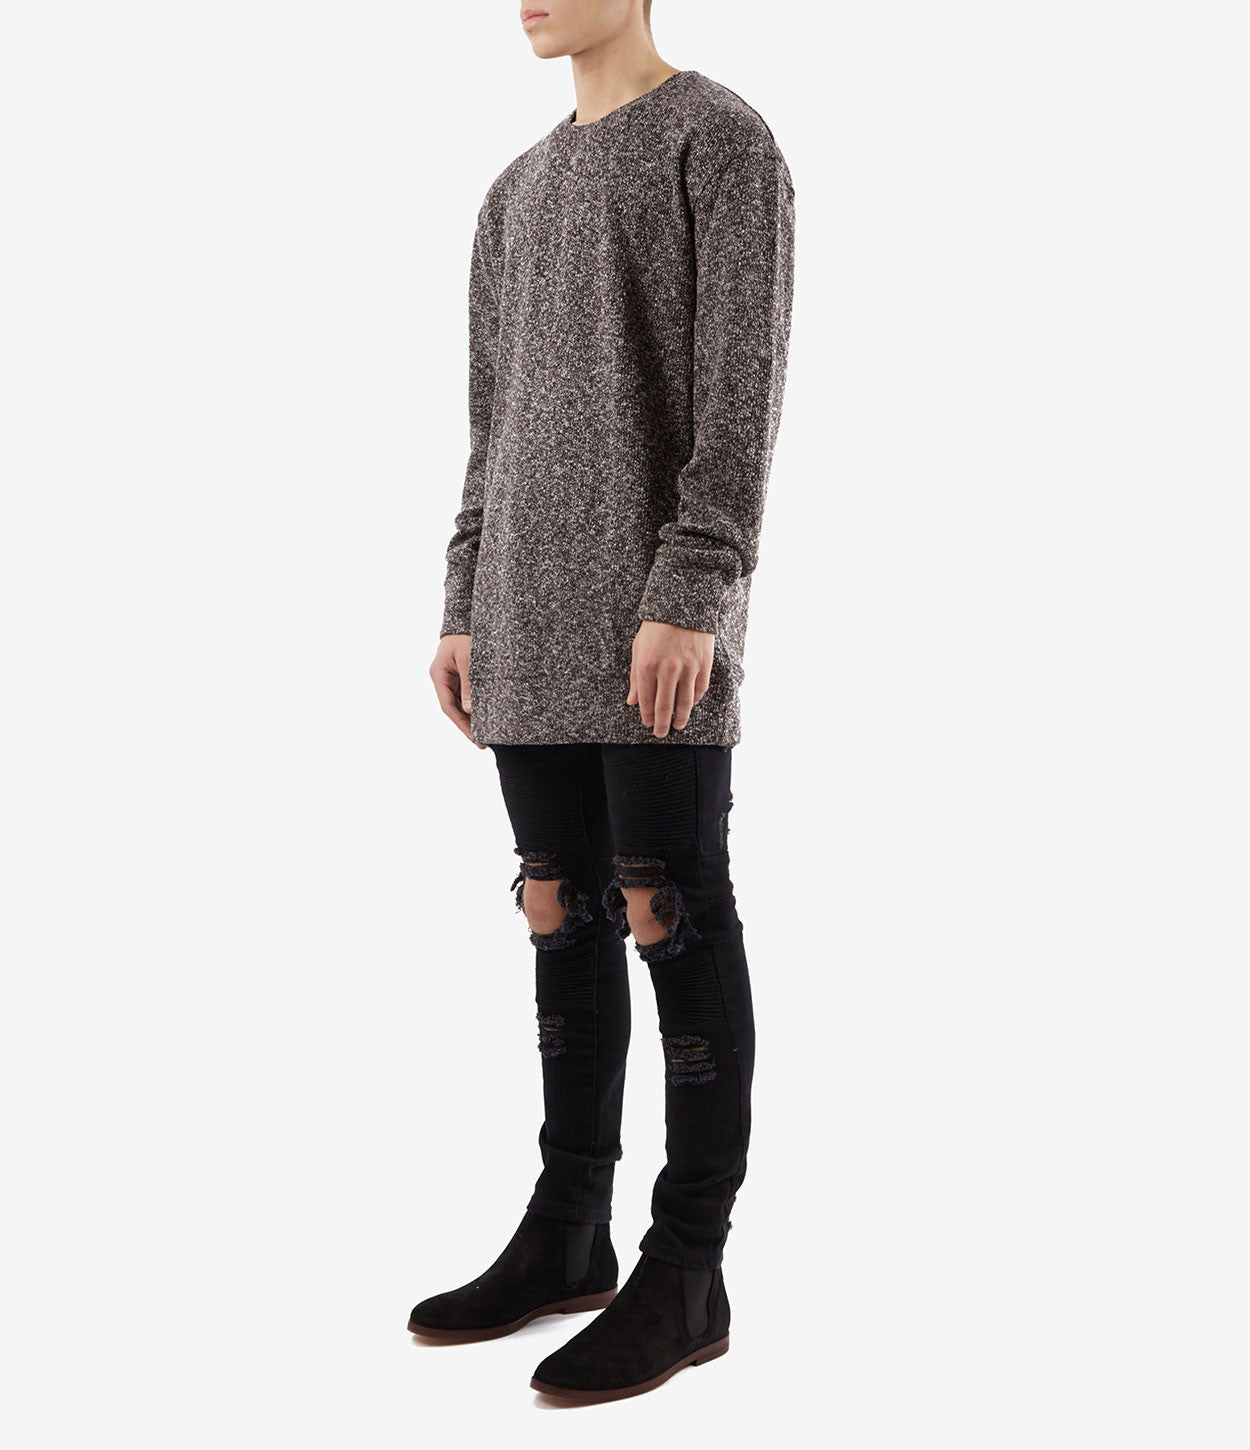 SW375 Elongated Knit Jumper - Black - underated london - underatedco - 3